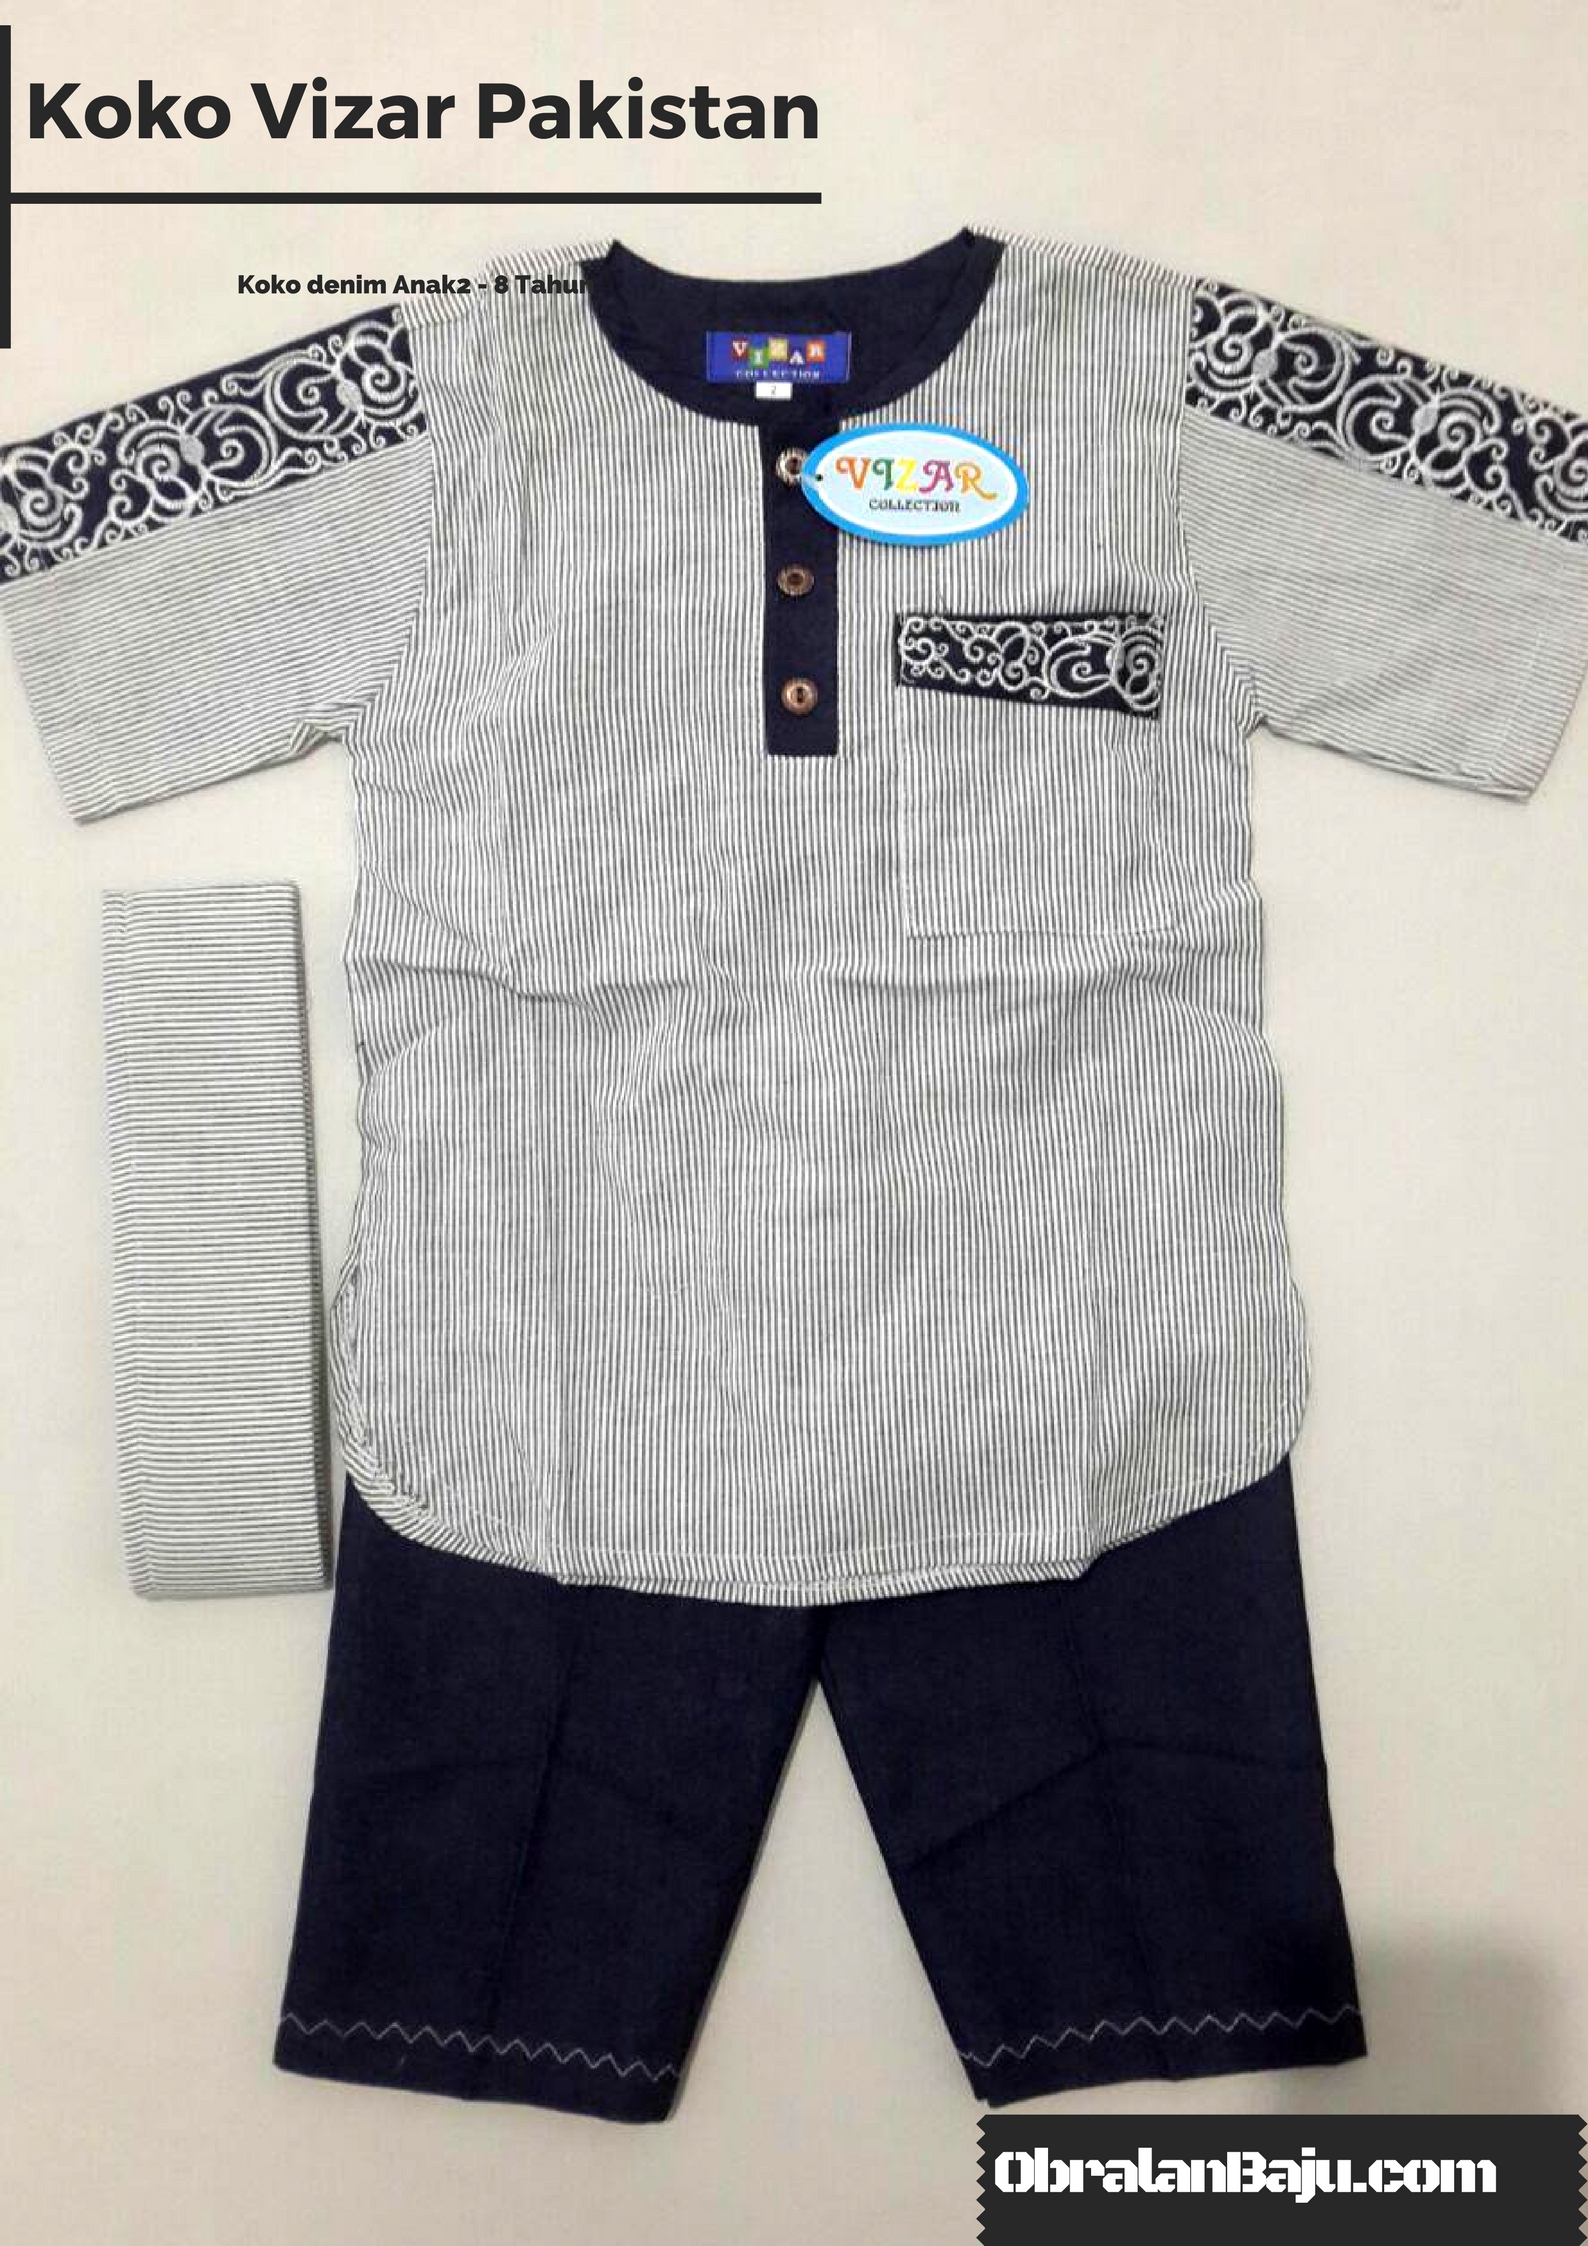 supplier kokoa denim anak murah